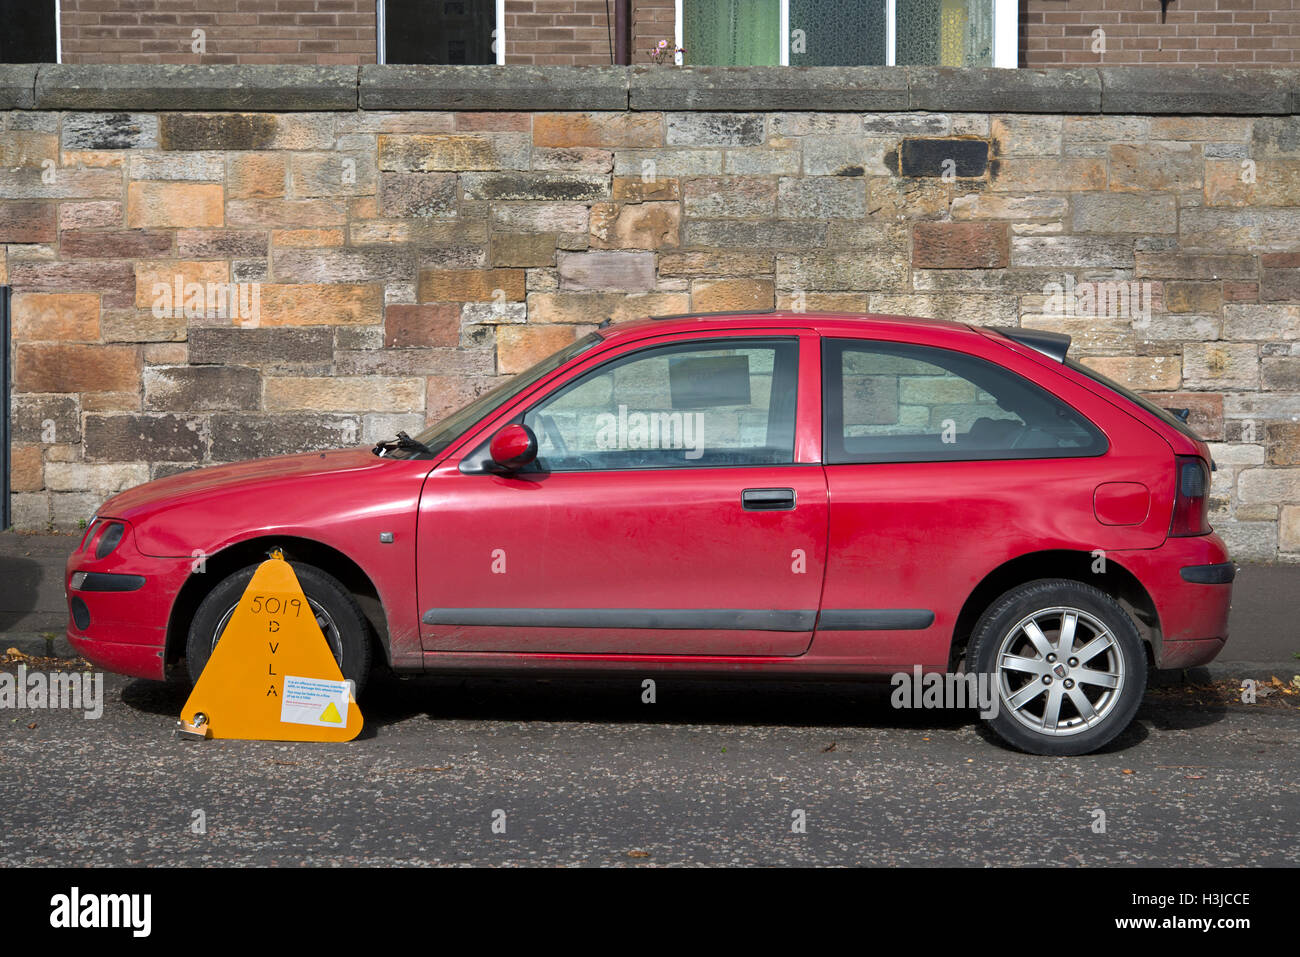 Untaxed car clamped by the DVLA. Stock Photo